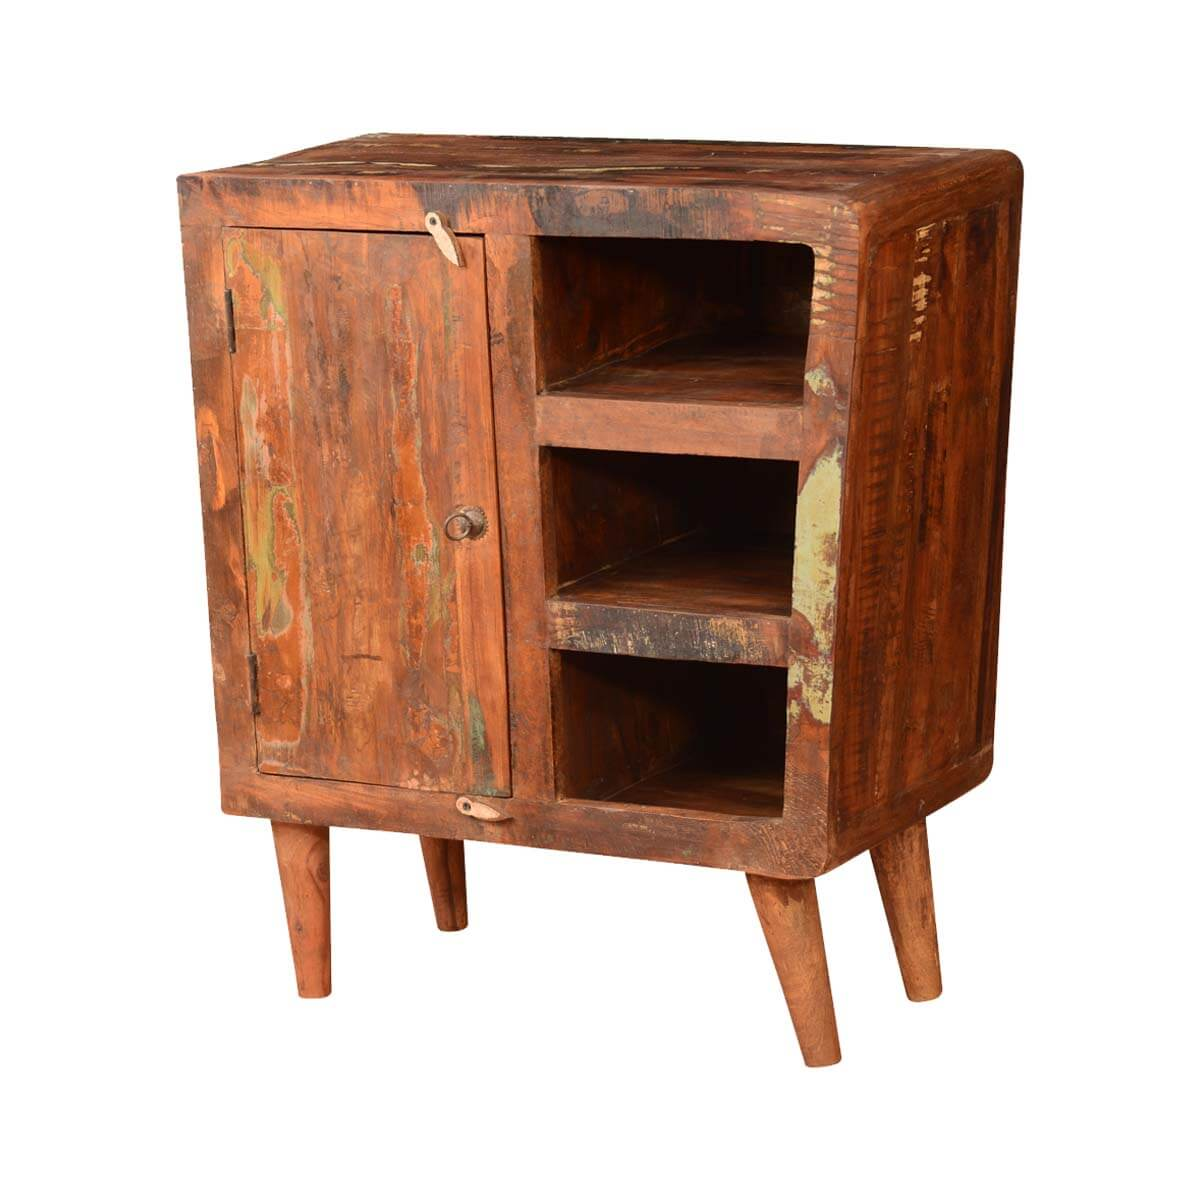 Phenomenal Lewes Retro Rustic Reclaimed Wood Open Shelves Freestanding Cabinet Home Interior And Landscaping Oversignezvosmurscom